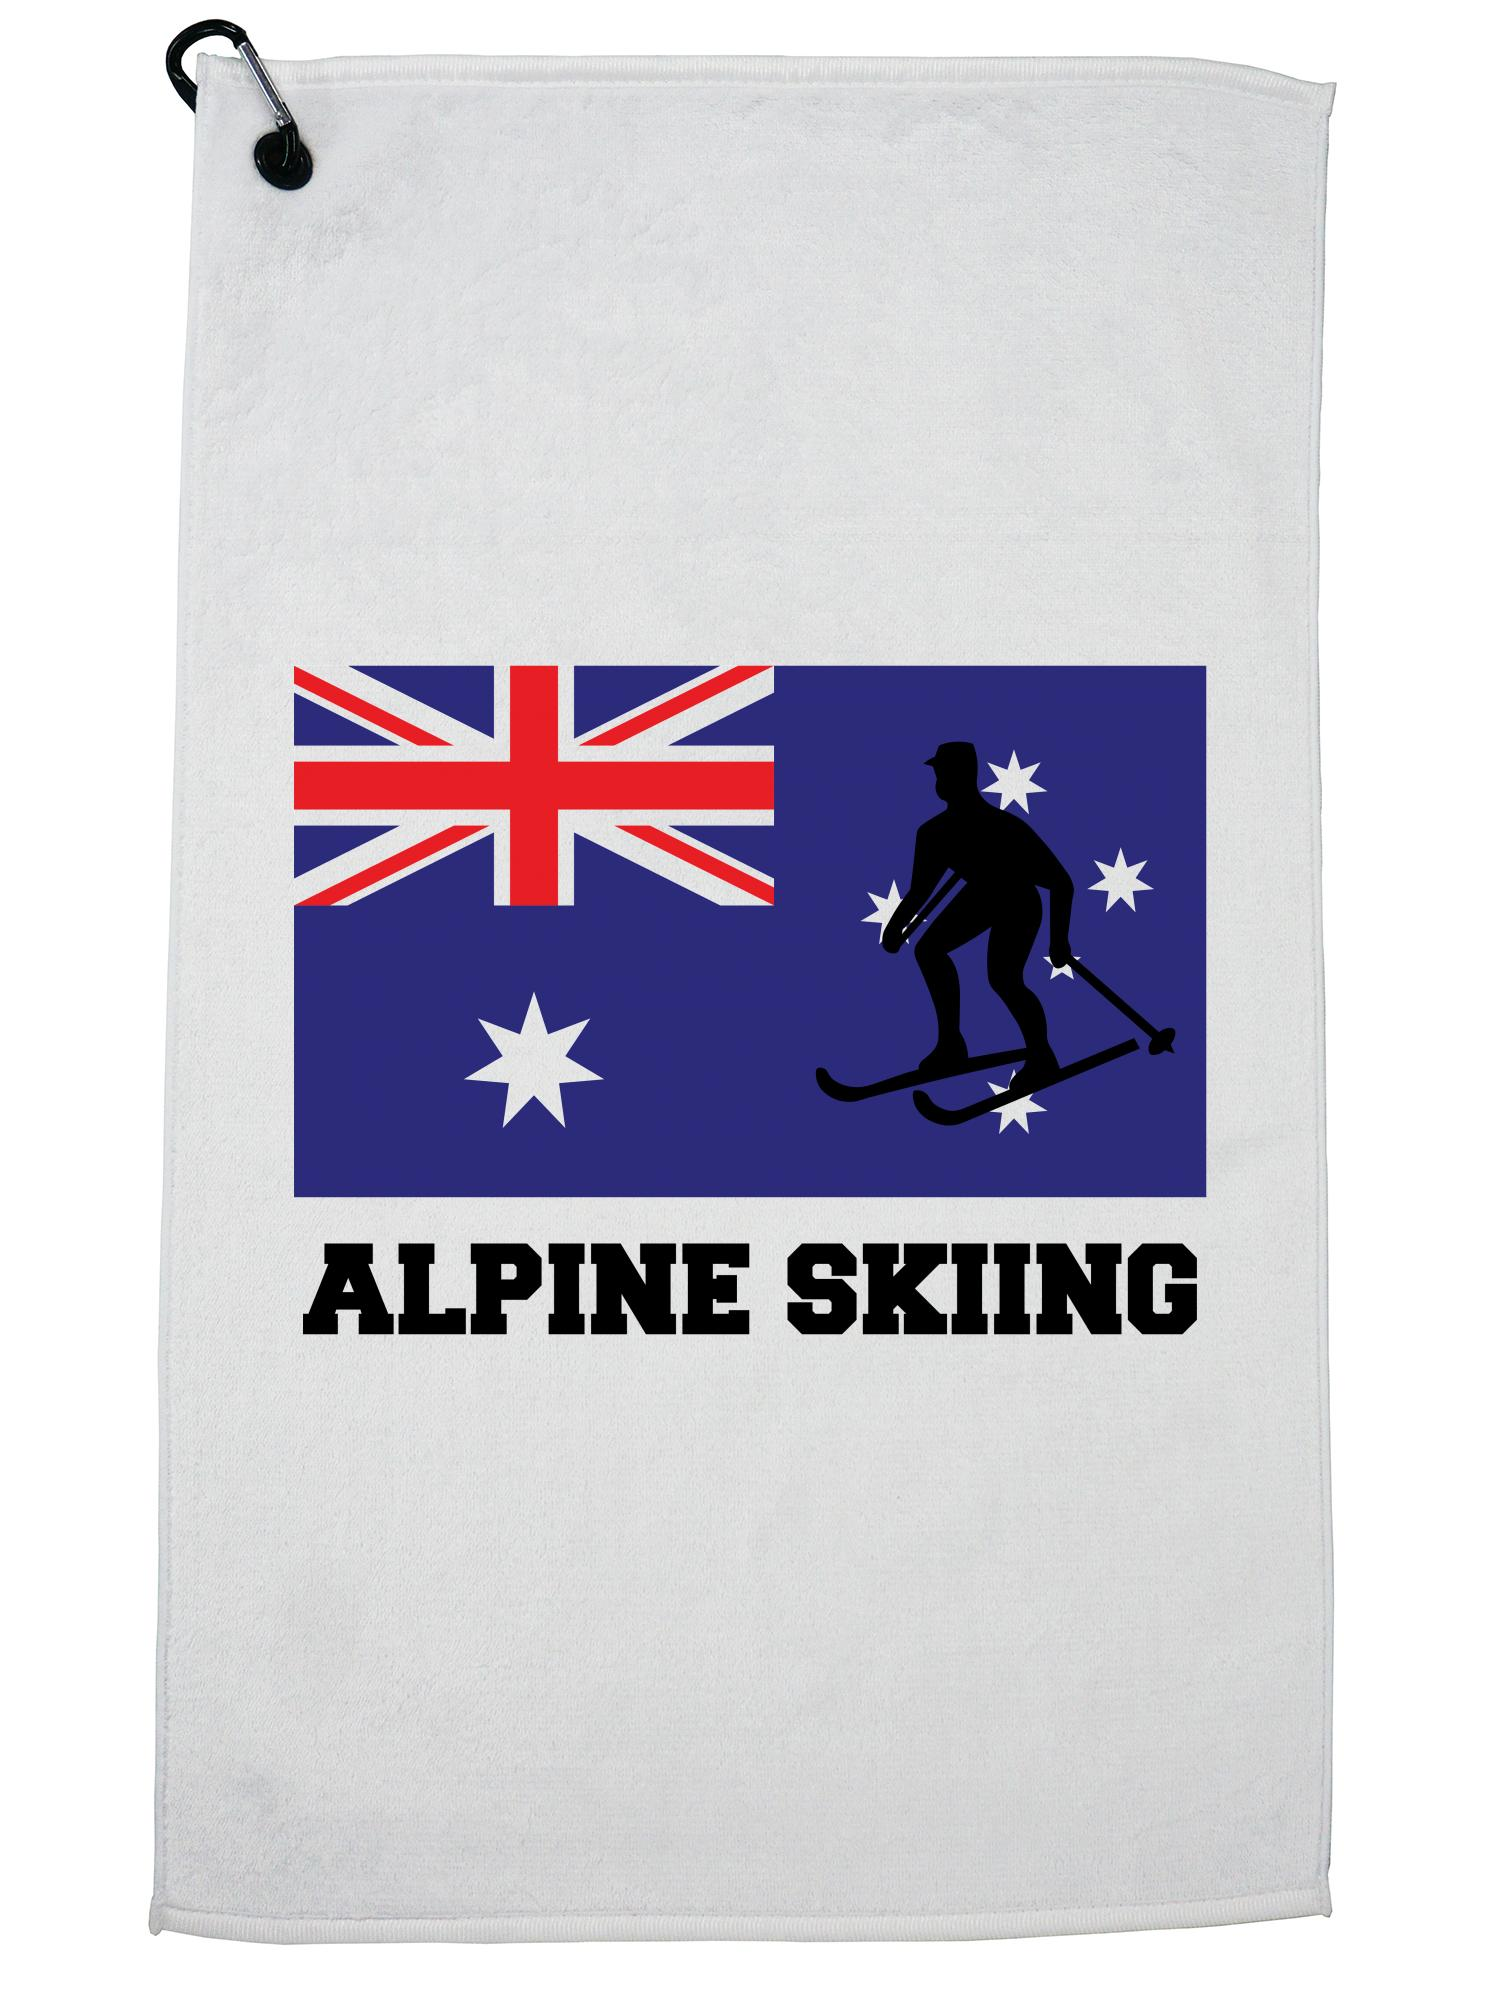 Australia Olympic Alpine Skiing AUS Flag Silhouette Golf Towel with Carabiner Clip by Hollywood Thread